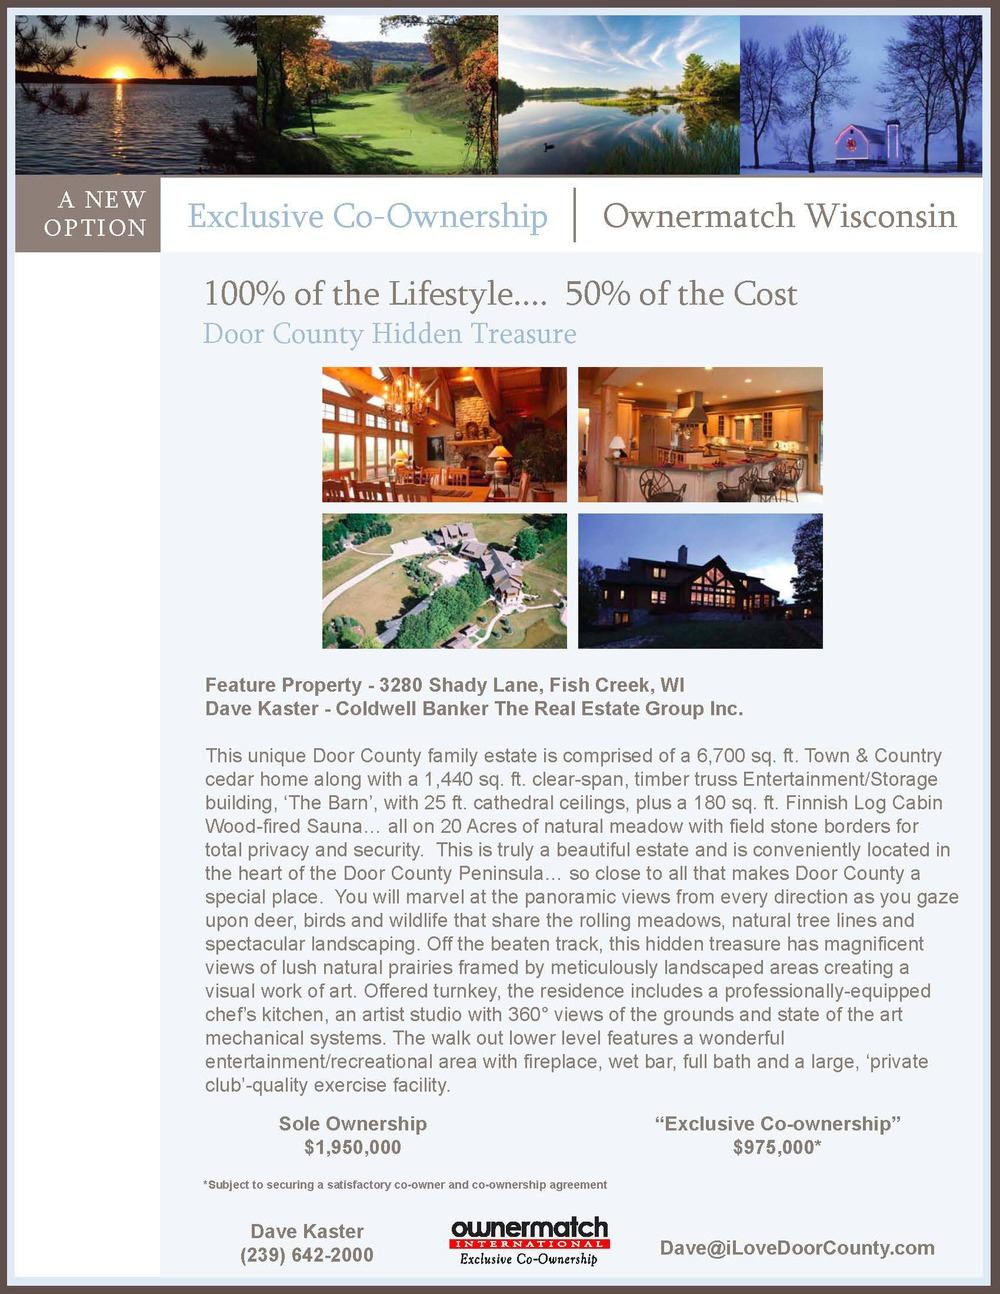 Ownermatch_FS_Dave_prop1_Page_2.jpg